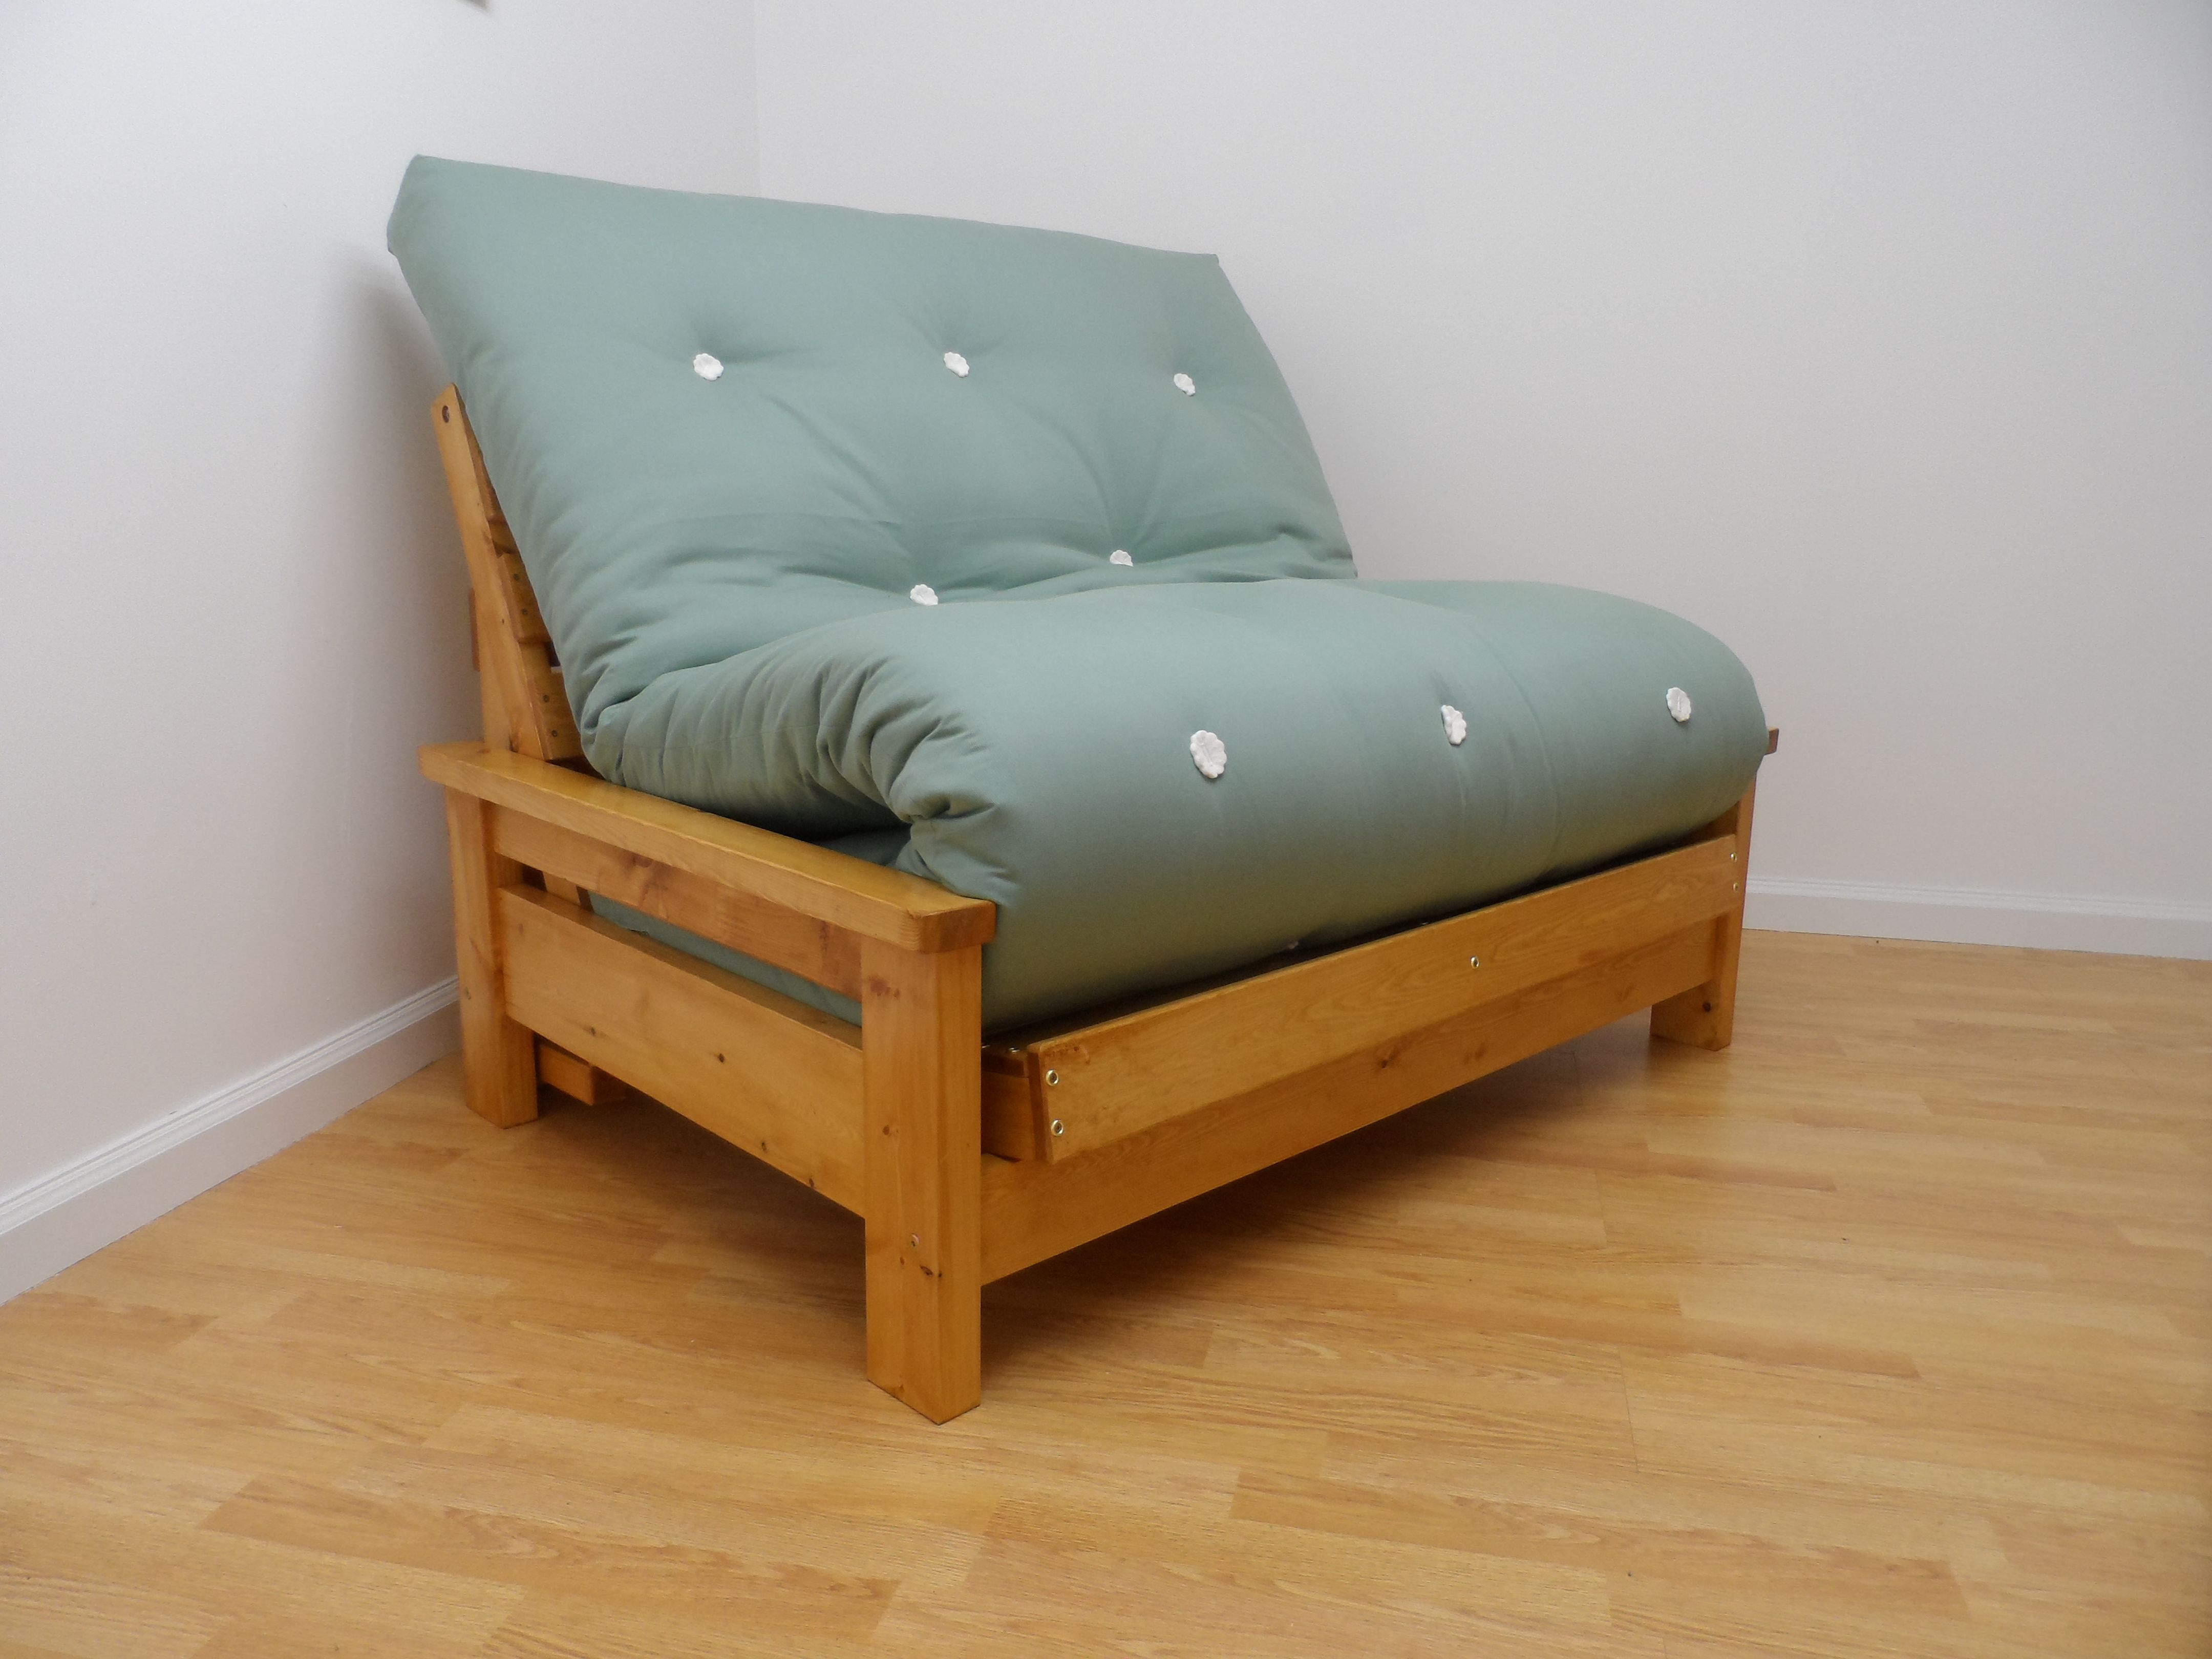 Sheffield Tri Fold Futon Made To Bespoke Length Of 7ft We Can Custom Make All Our Futons Your Specifications